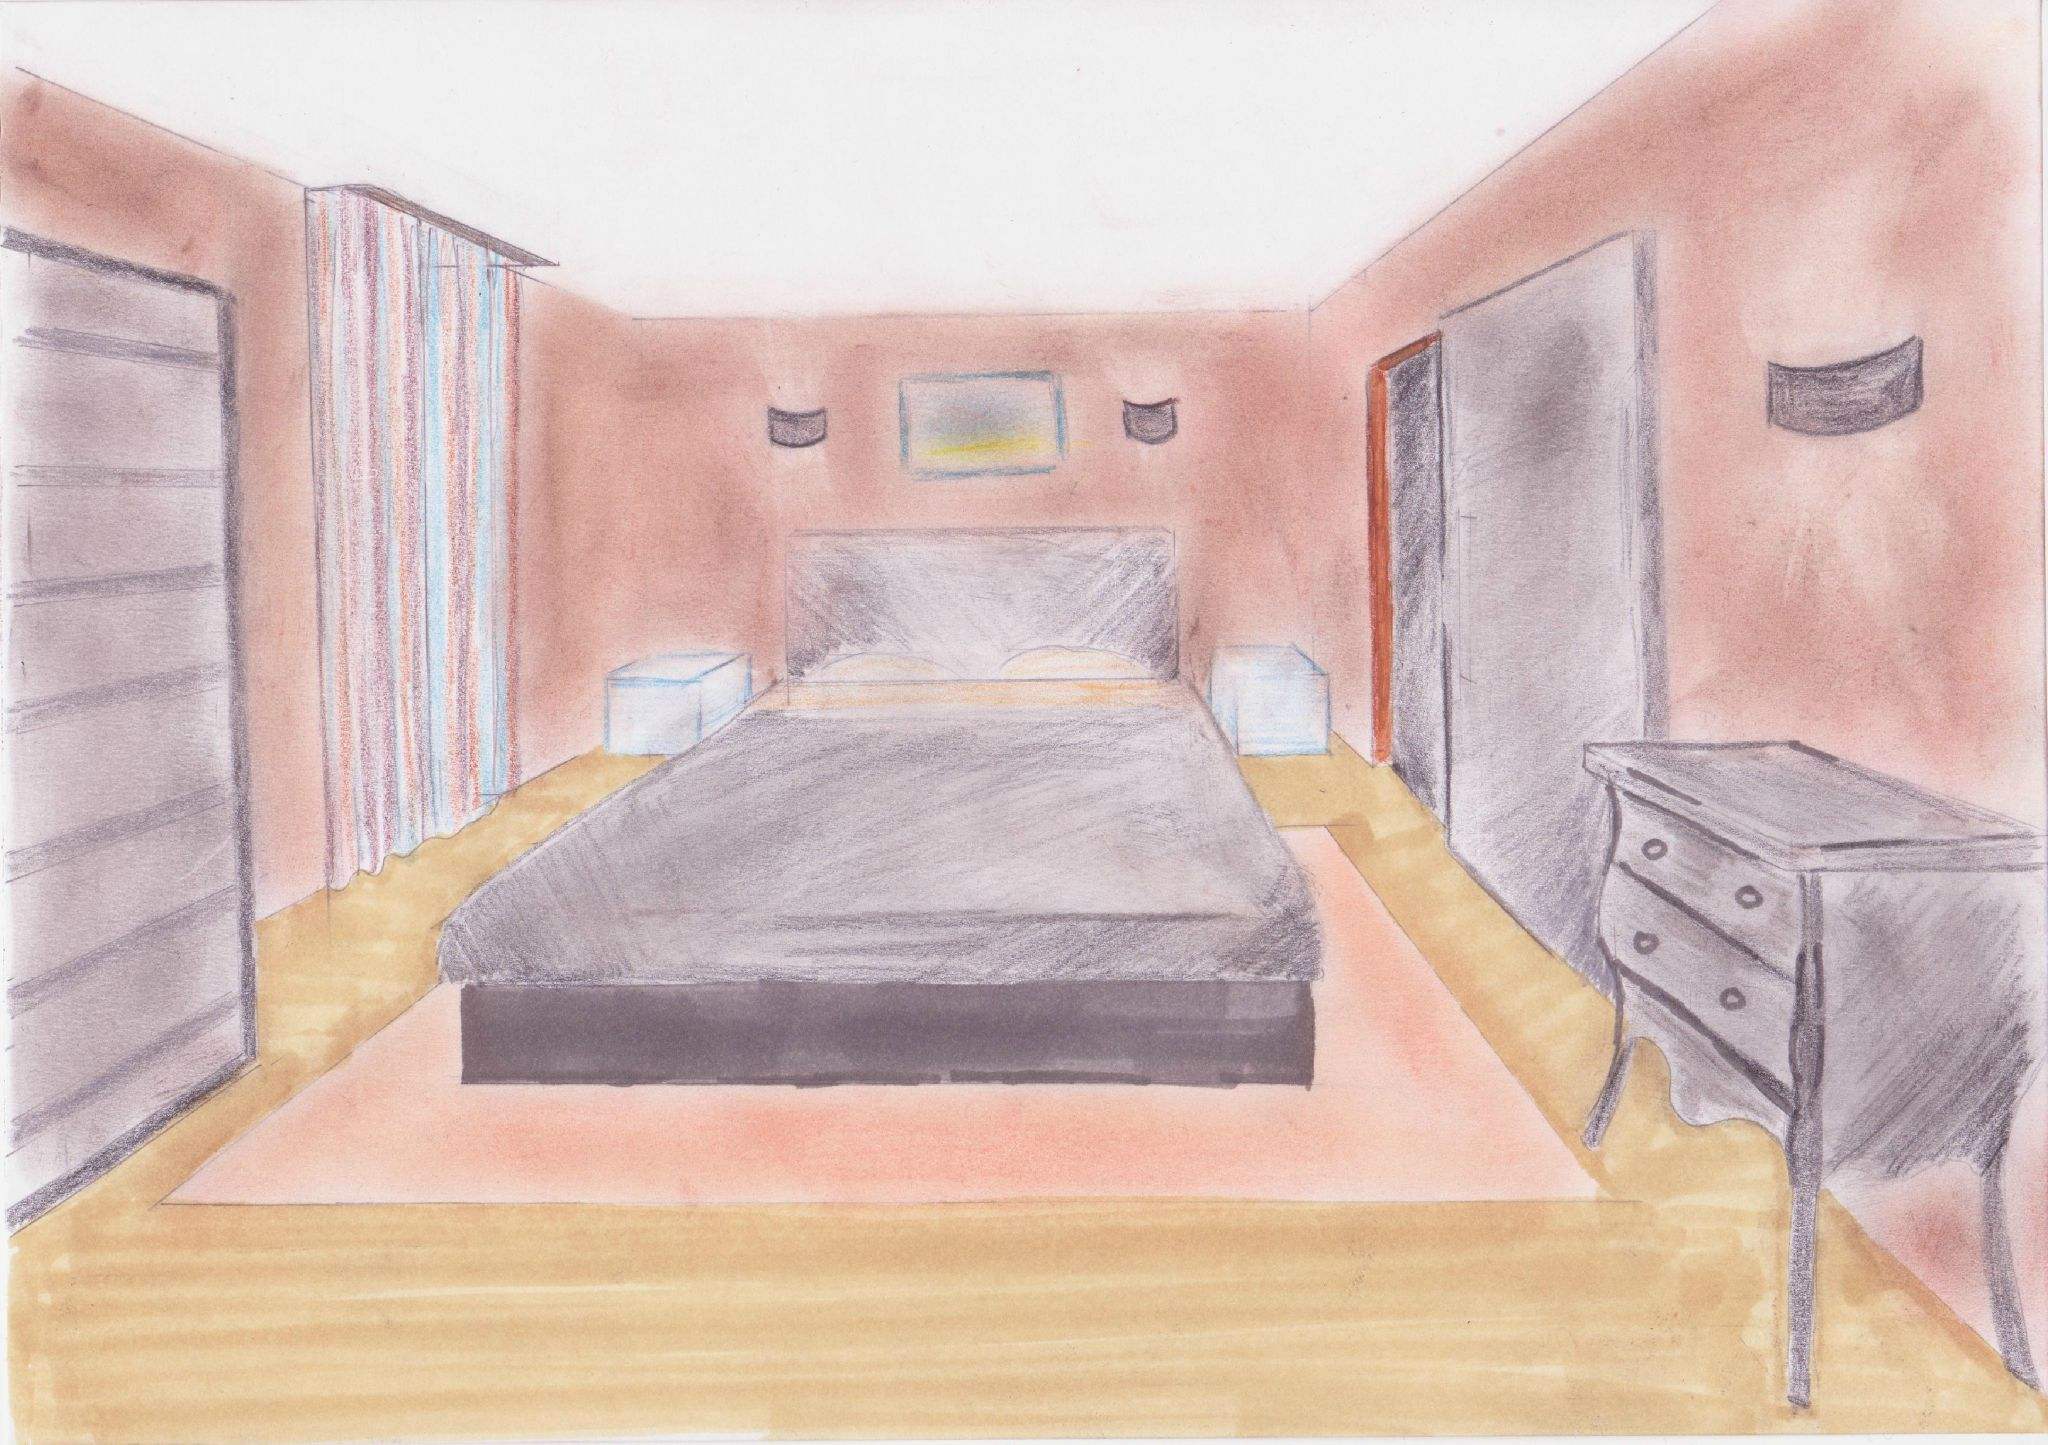 Perspective Chambre 2 Photo De Dessins En Perspective